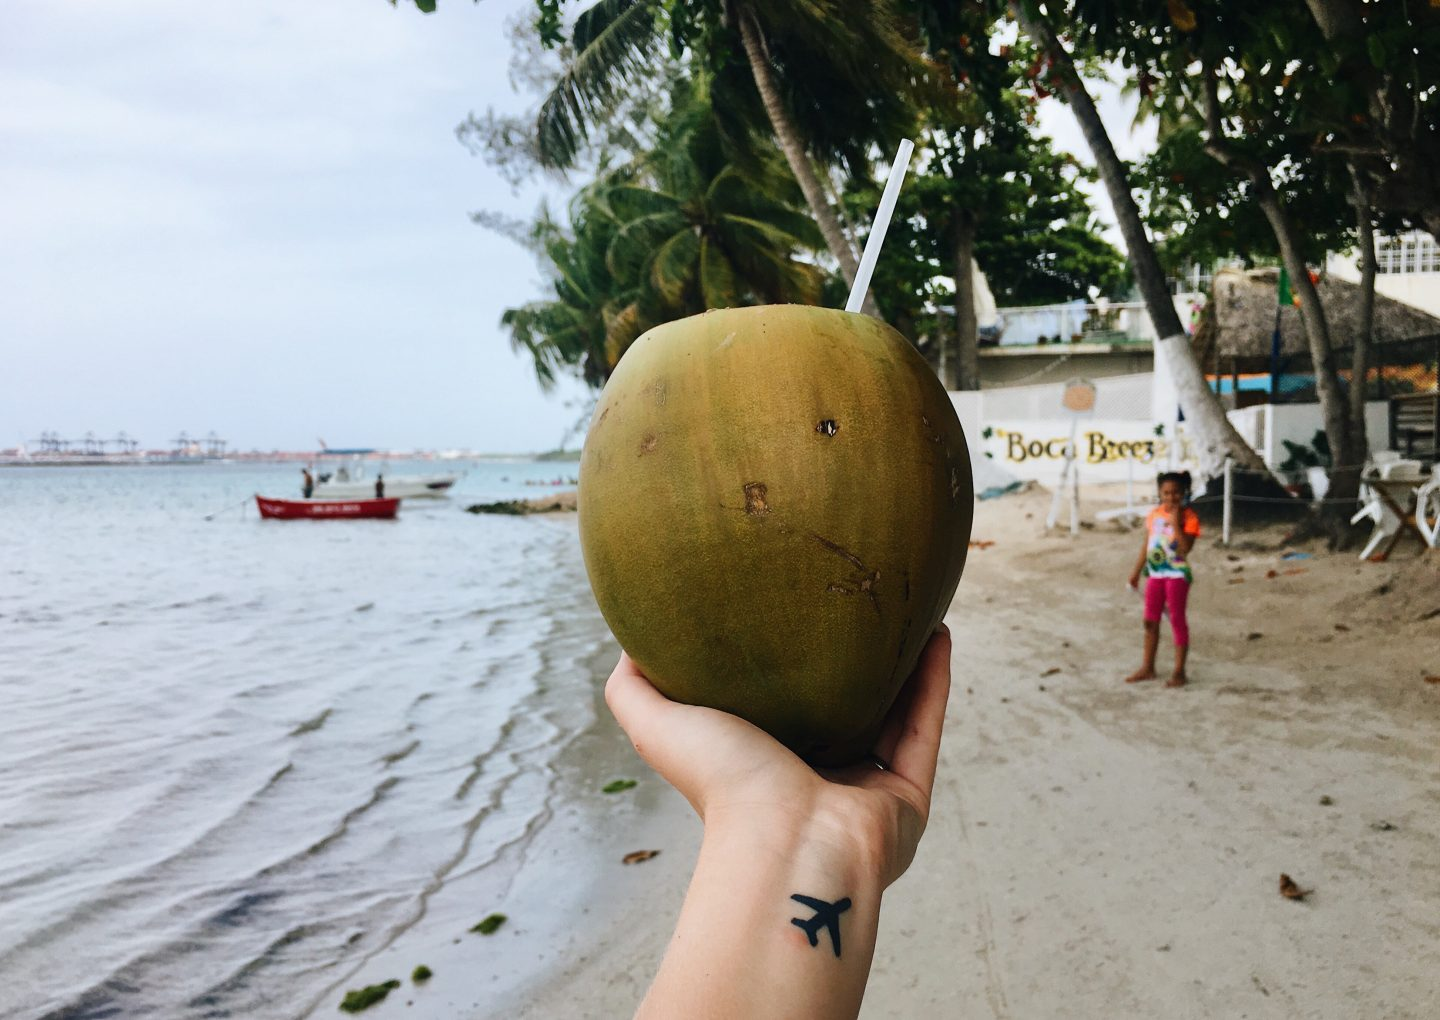 Drinking from a fresh coconut in Boca Chica, Dominican Republic!